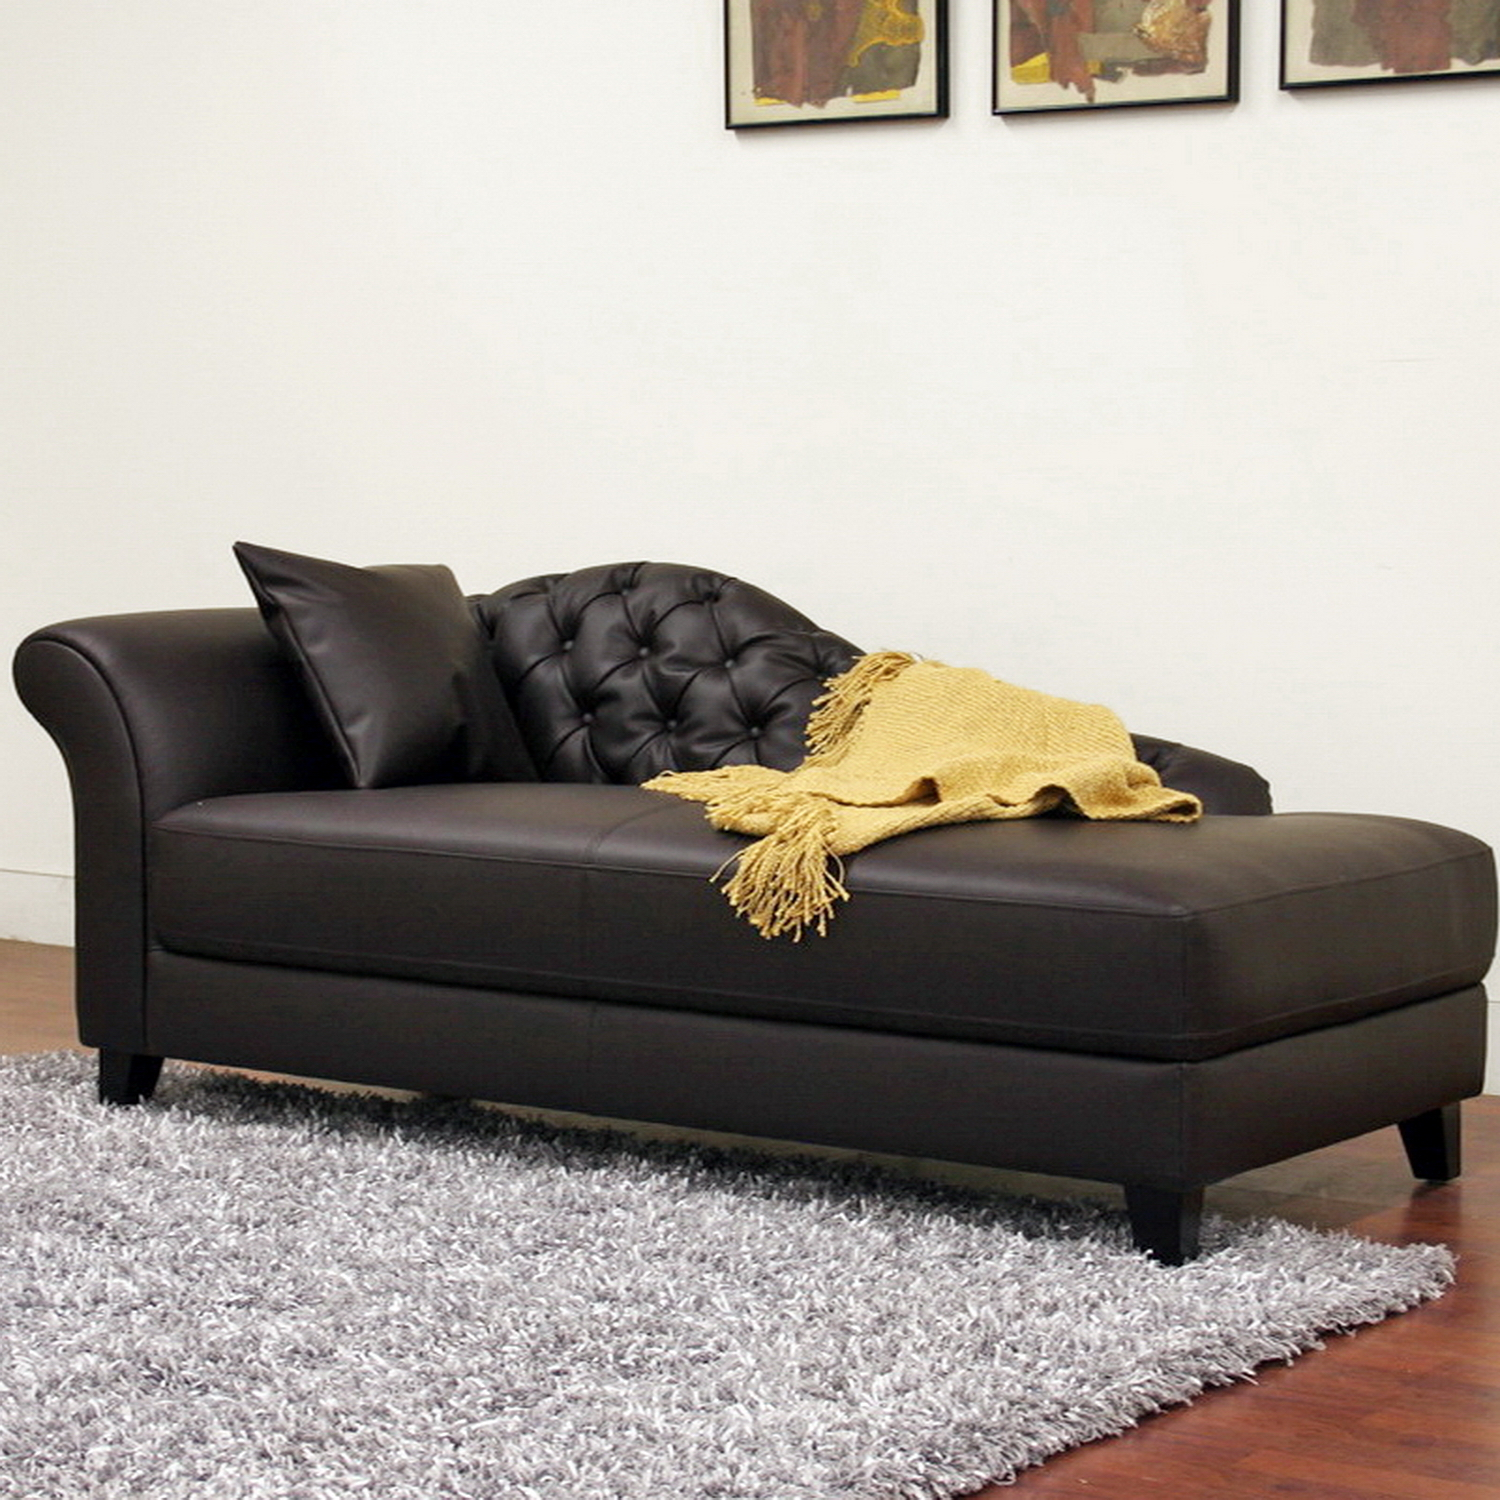 Furniture living room furniture chaise lounge black for Chaise lounge black leather